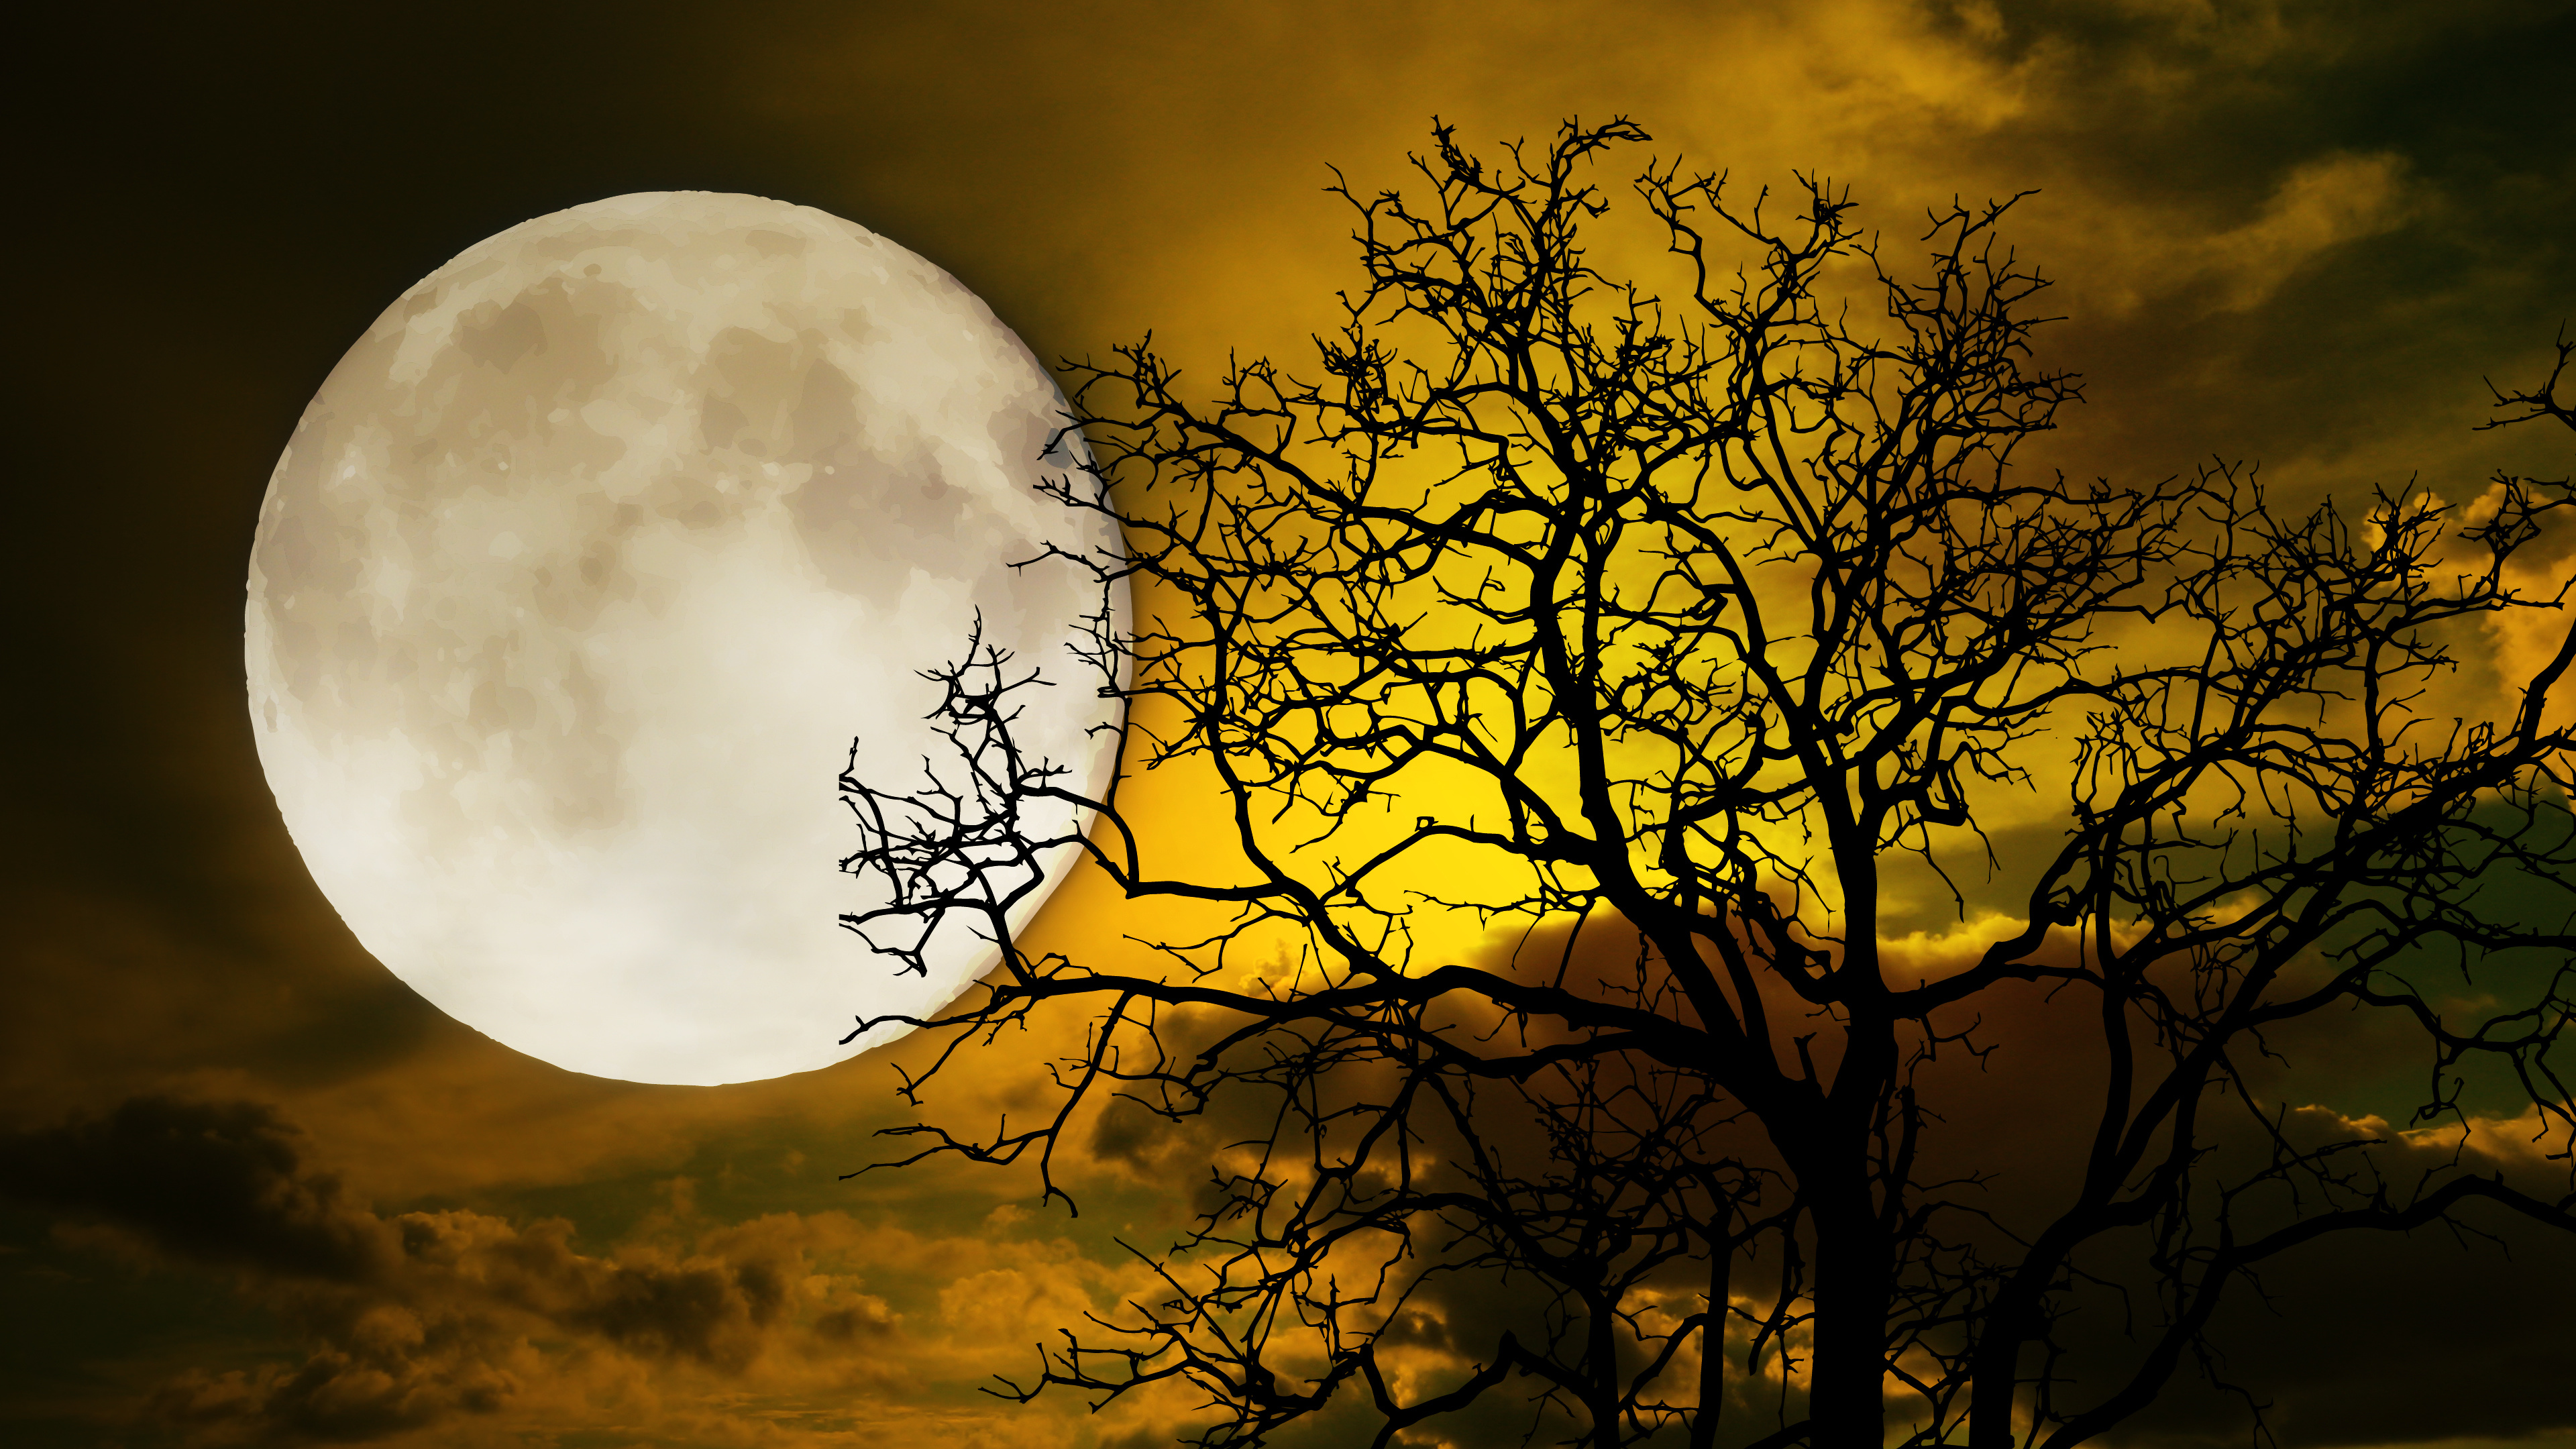 Full Moon with Trees